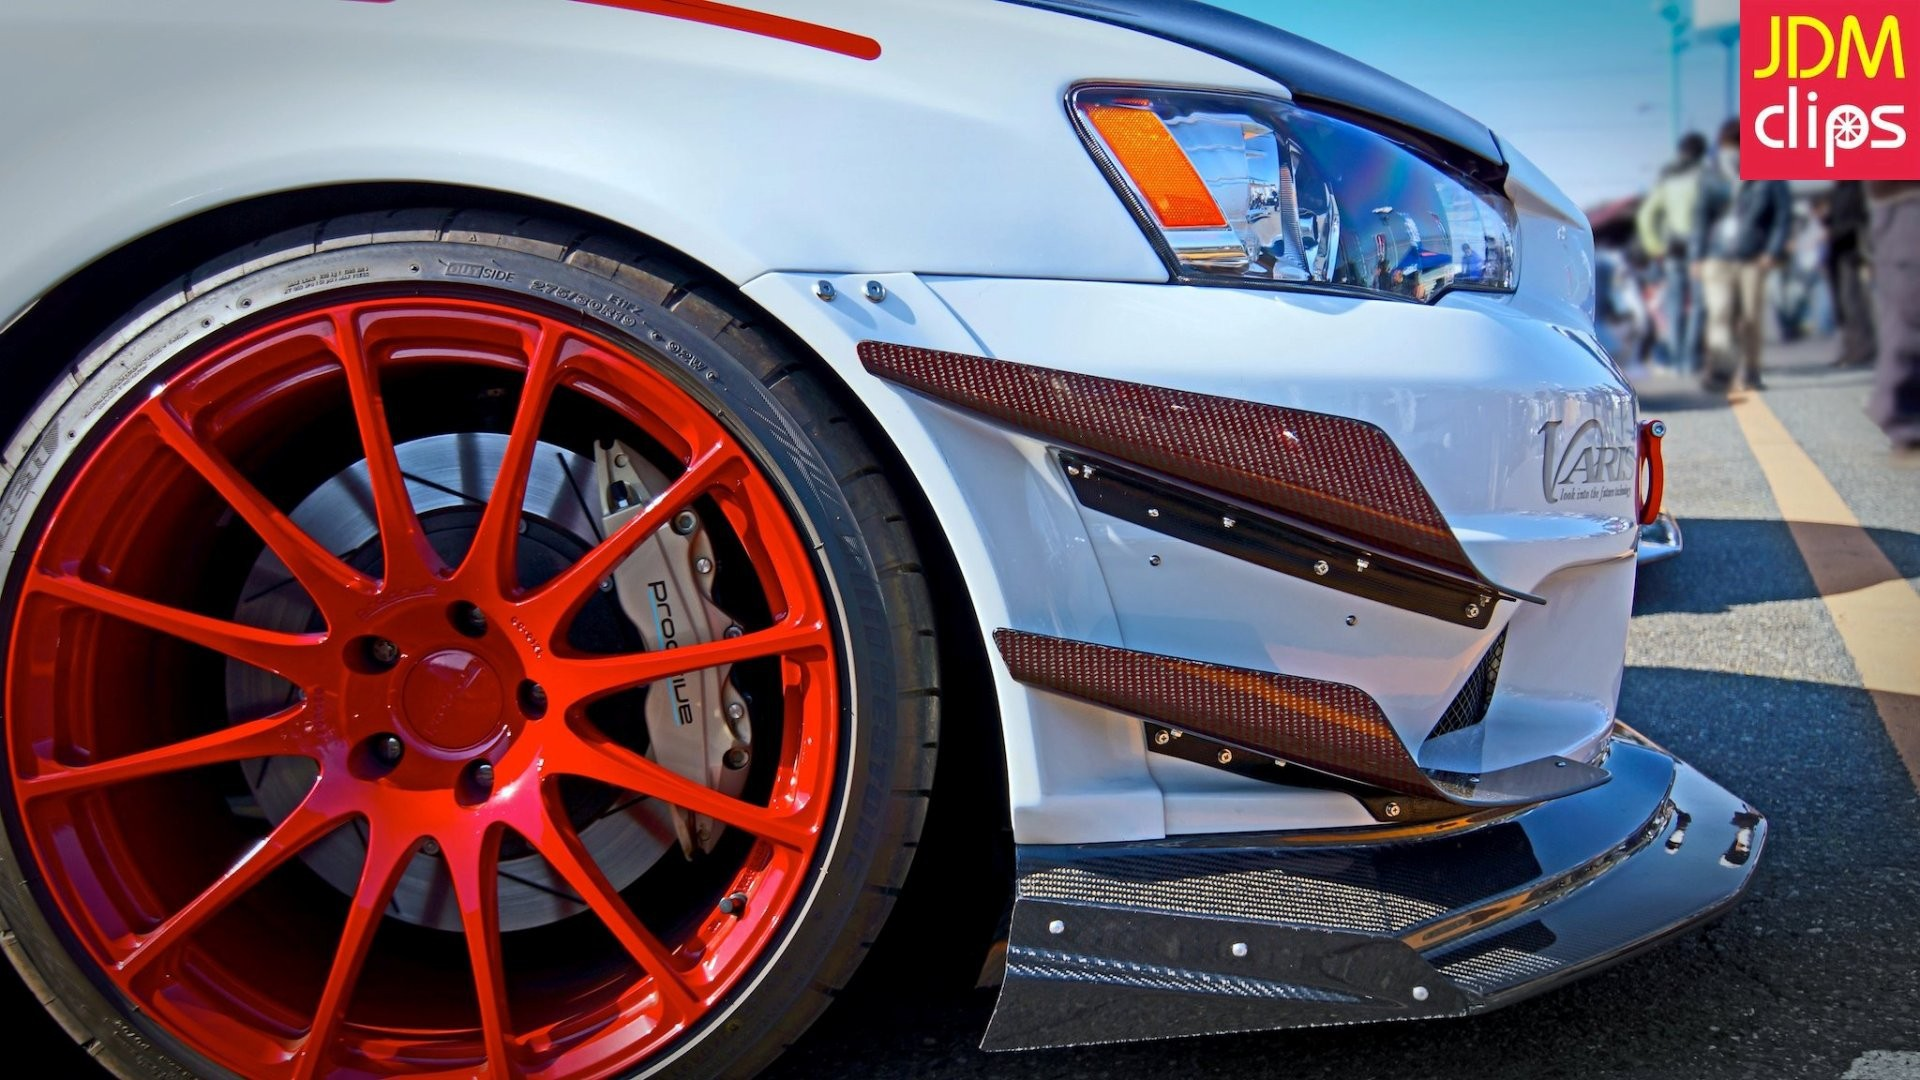 Evo 10 Wallpaper Orange Drive The Car Mitsubishi Lancer Evo X Wallpapers And Images